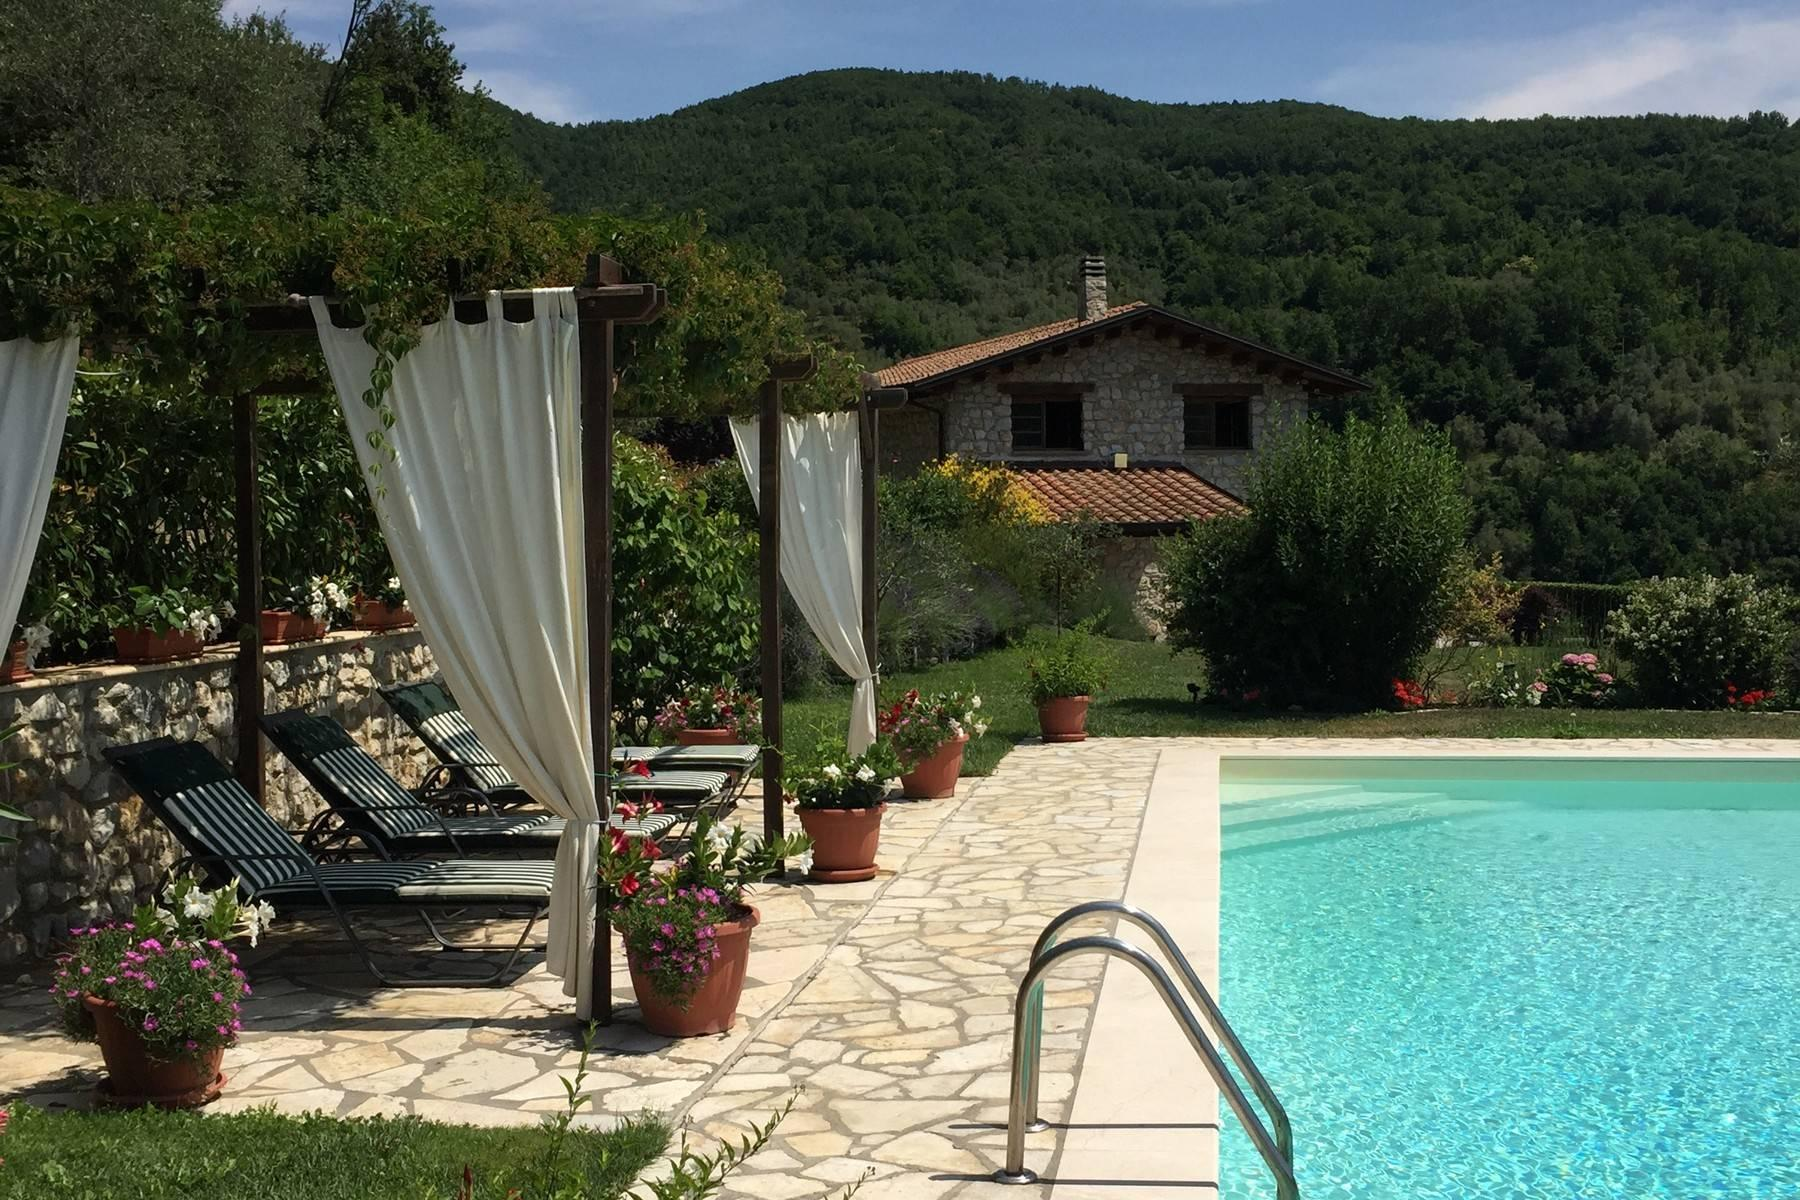 Delightful country house on the Lunigiana's hills - 3